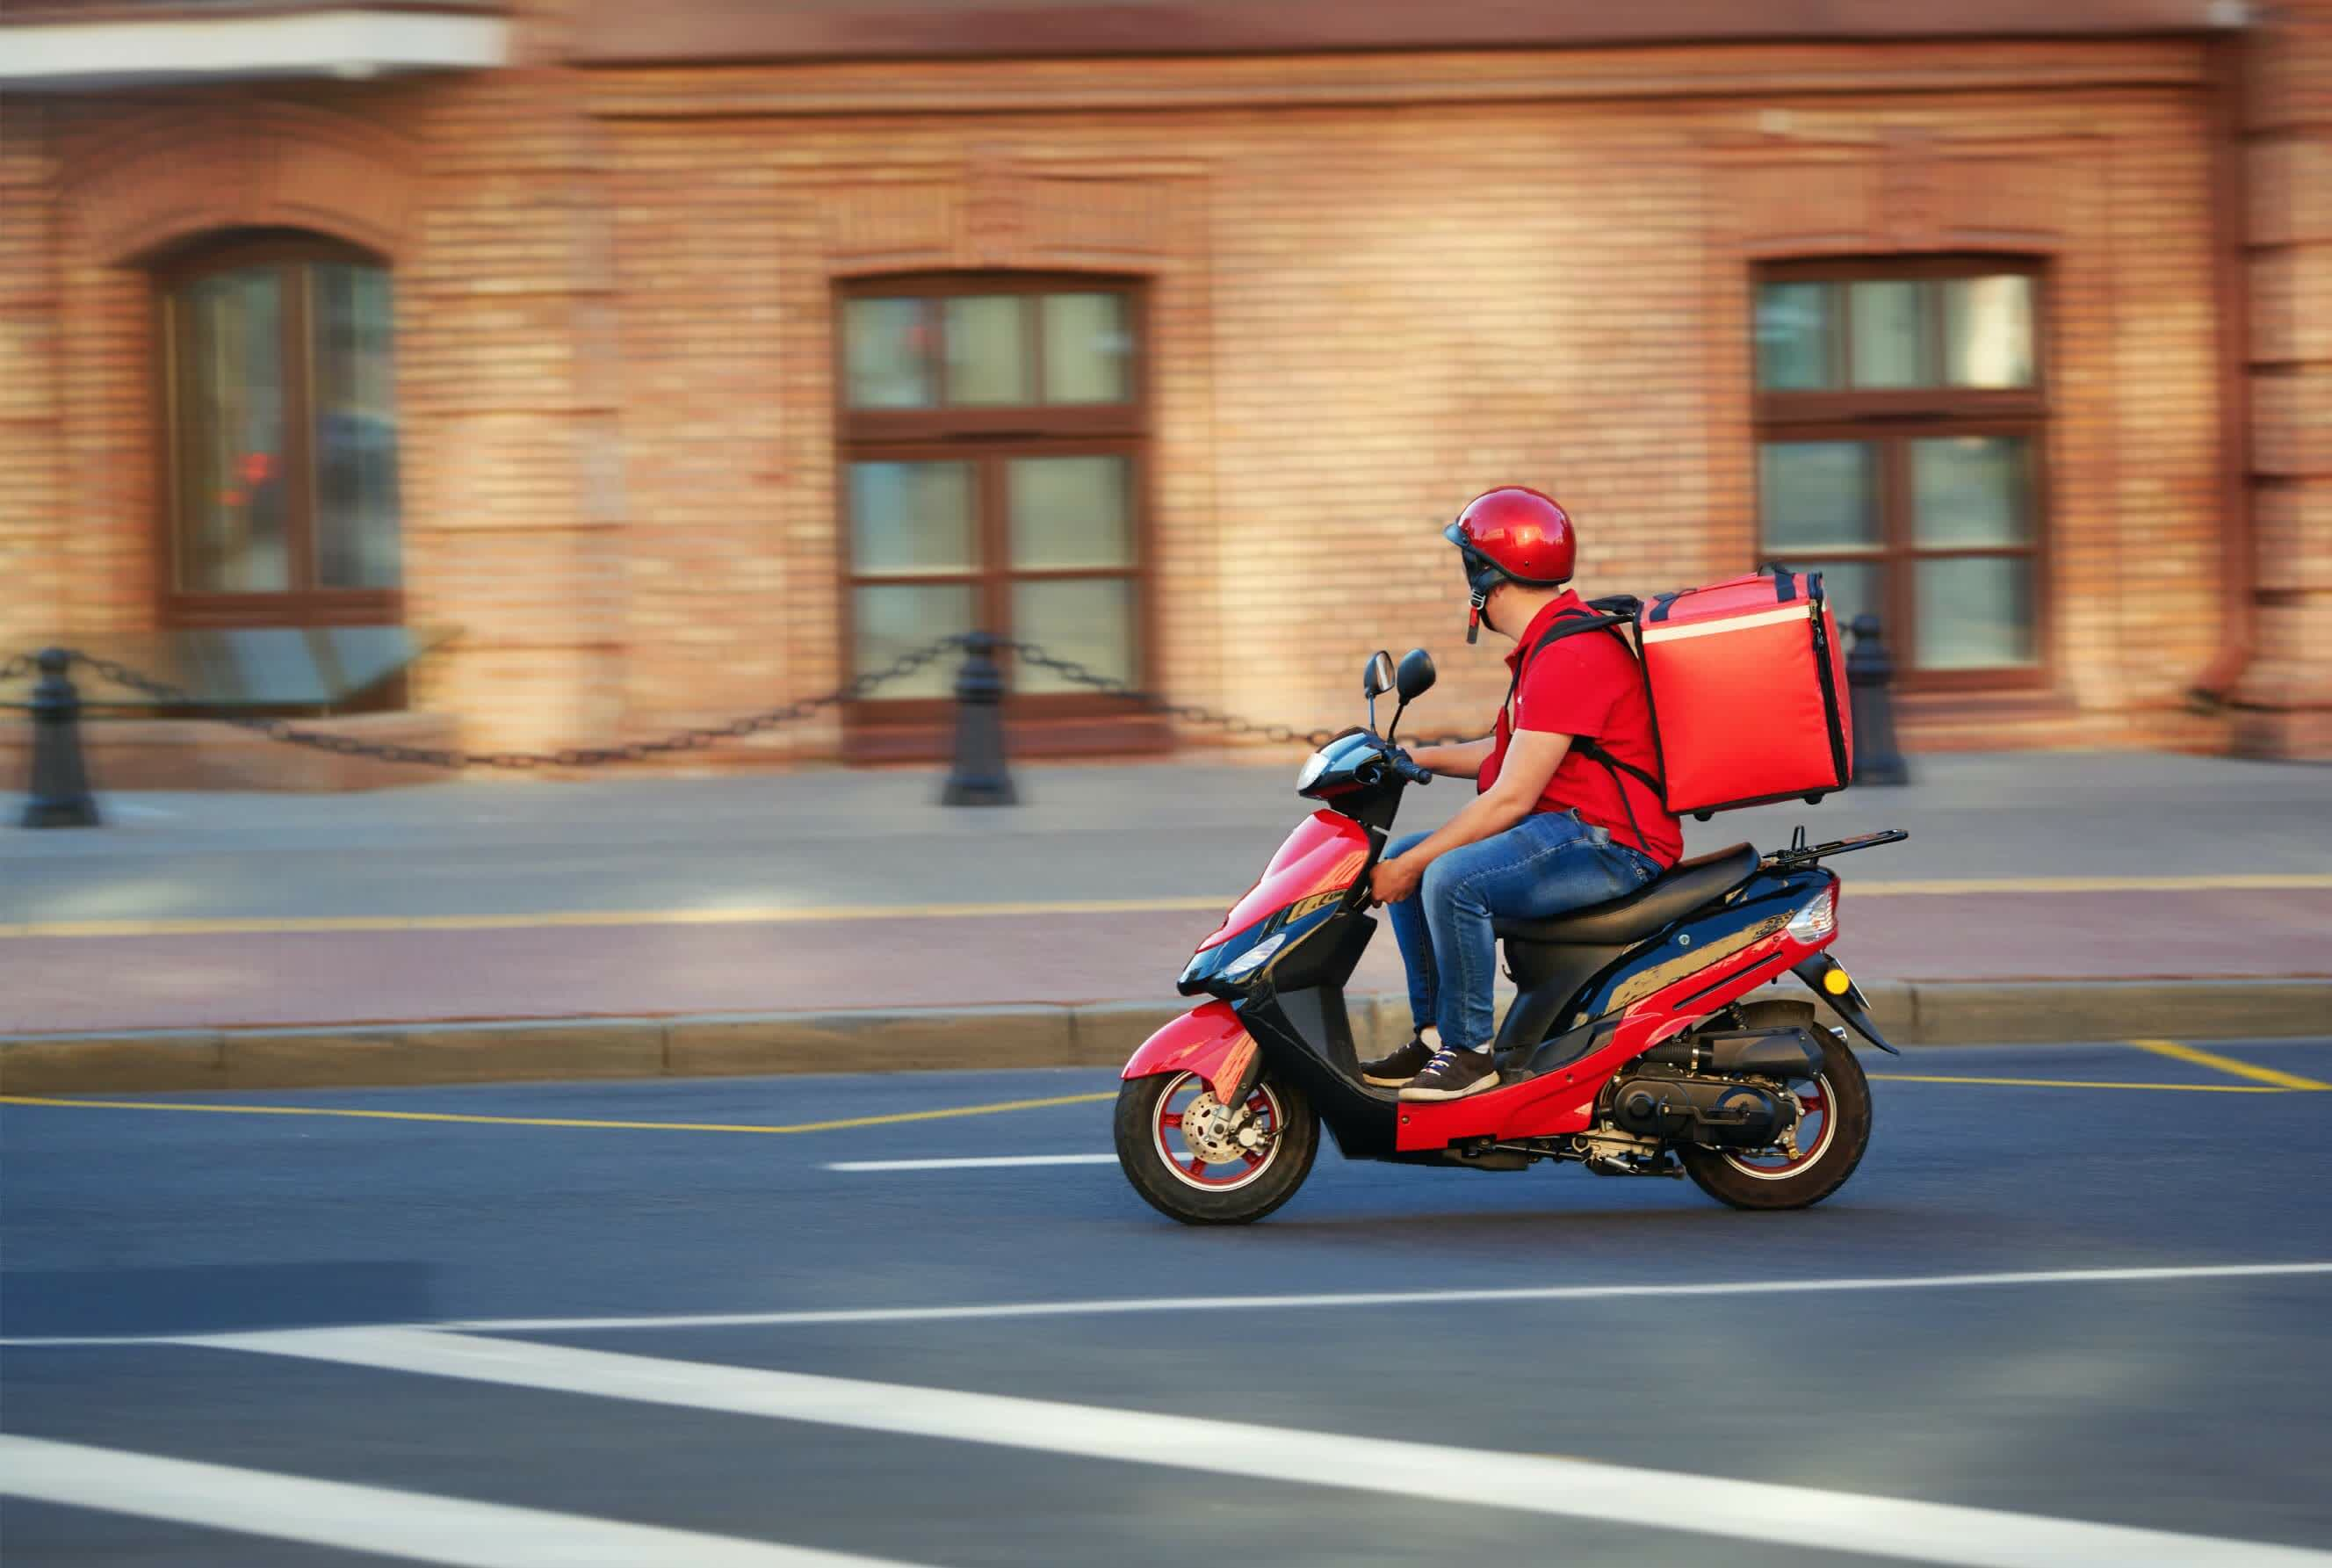 Chicago delivers legal action to DoorDash and Grubhub for dishing out deceptive business practices